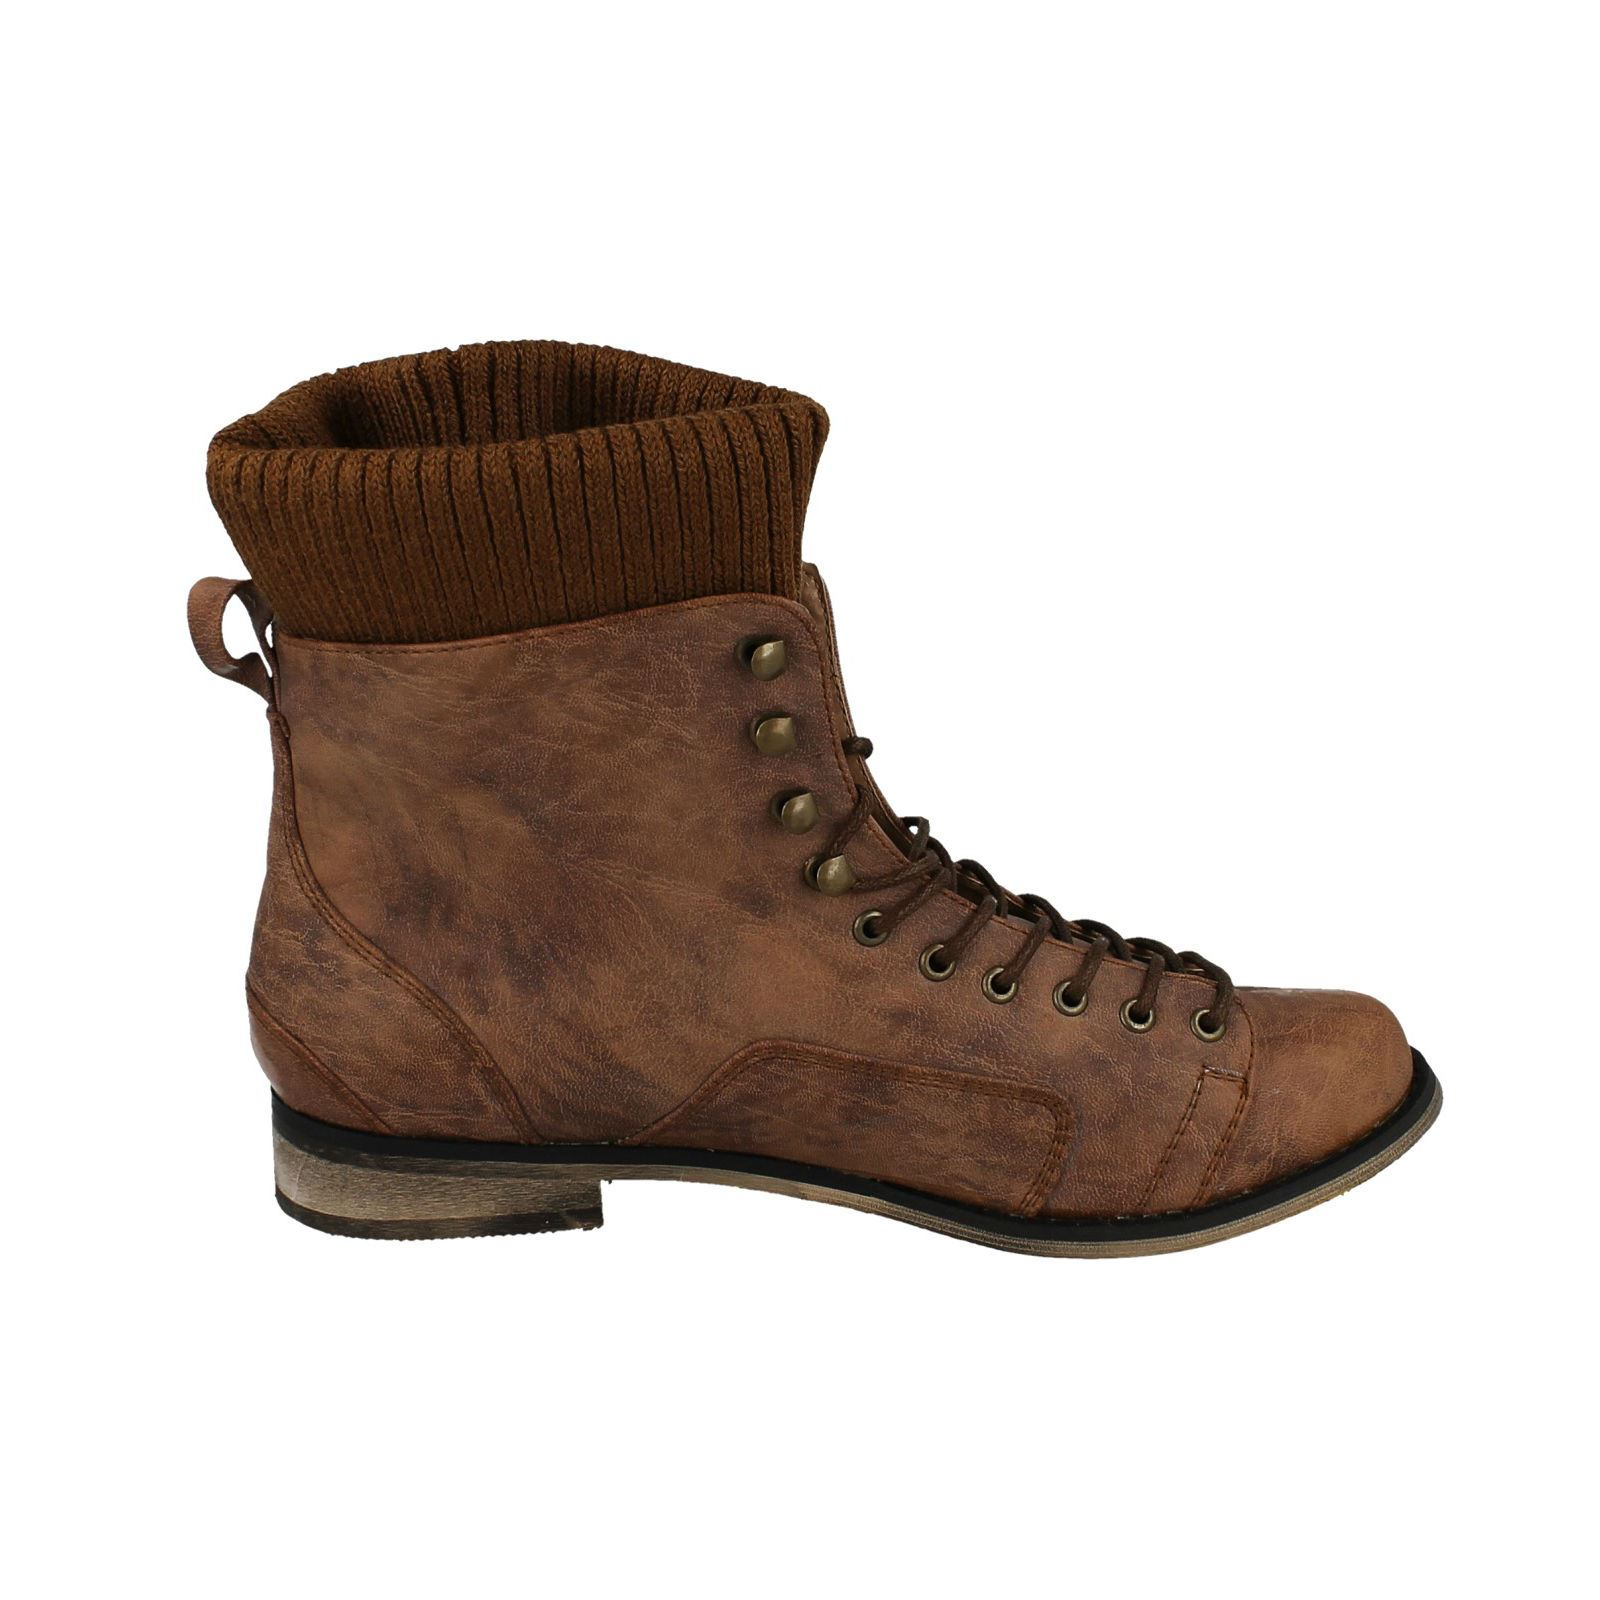 Damas Spot On Tobillo Botas F5R792